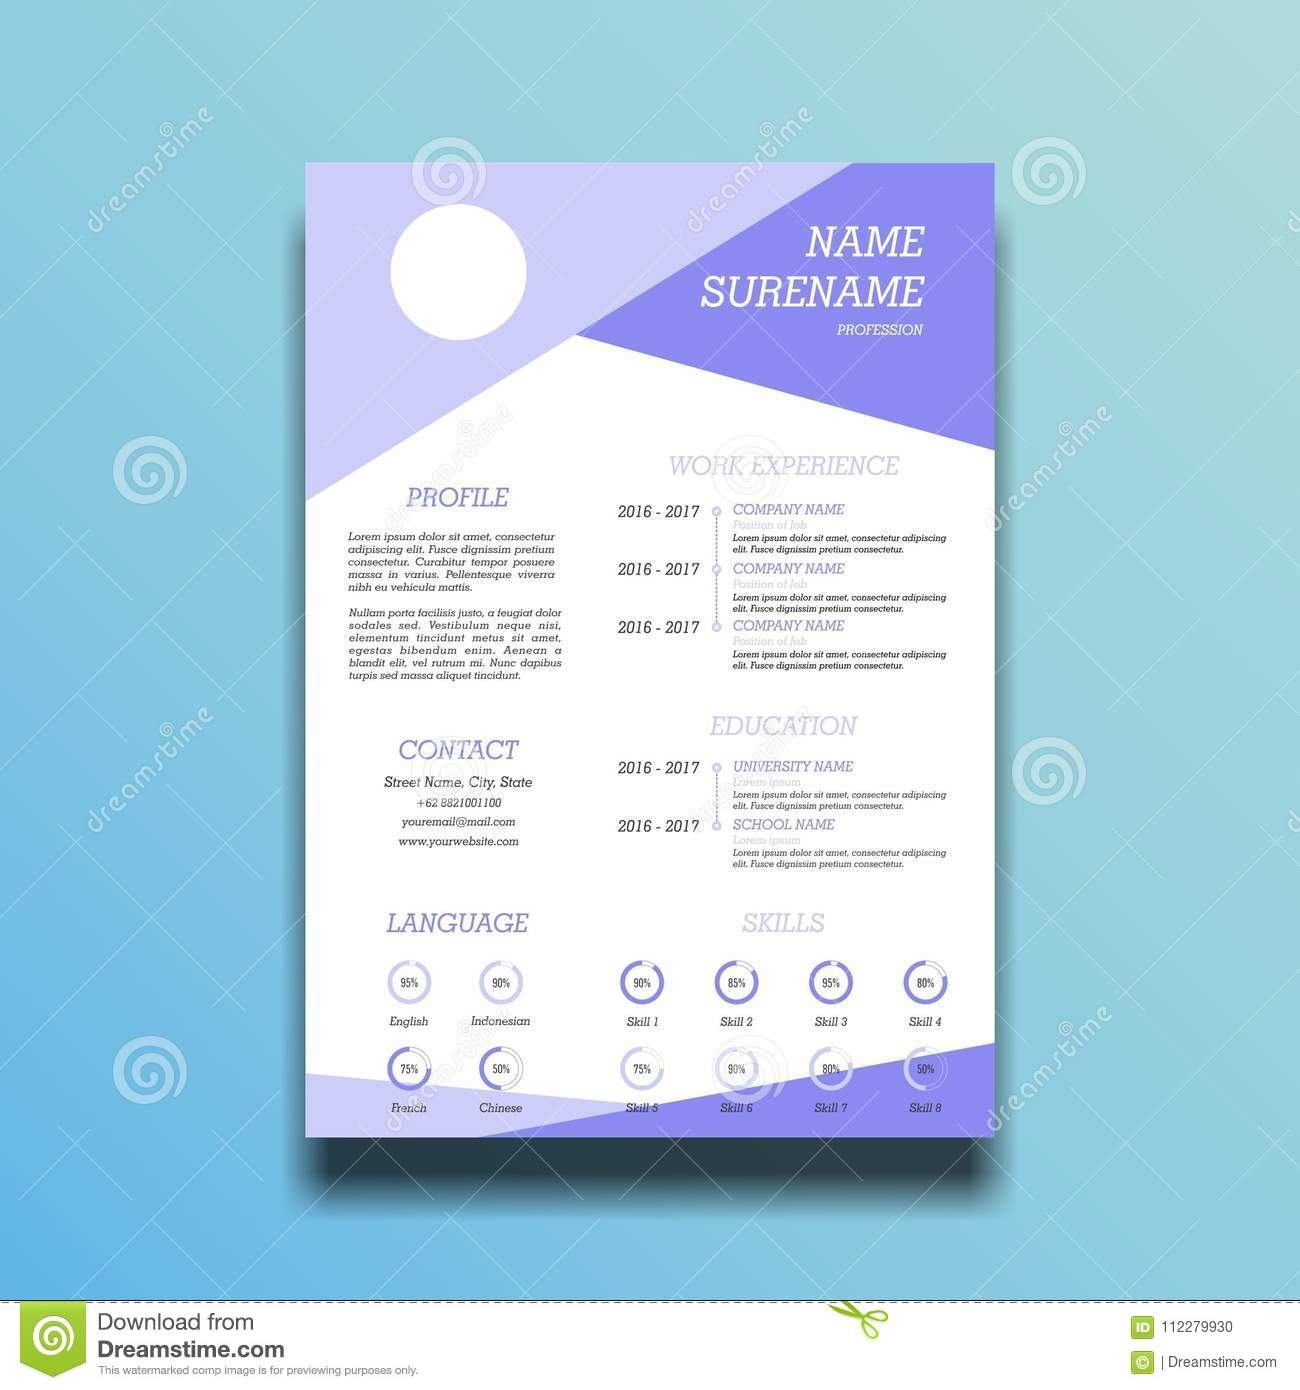 Abstract Curriculum Vitae Template Stock Vector Illustration Of